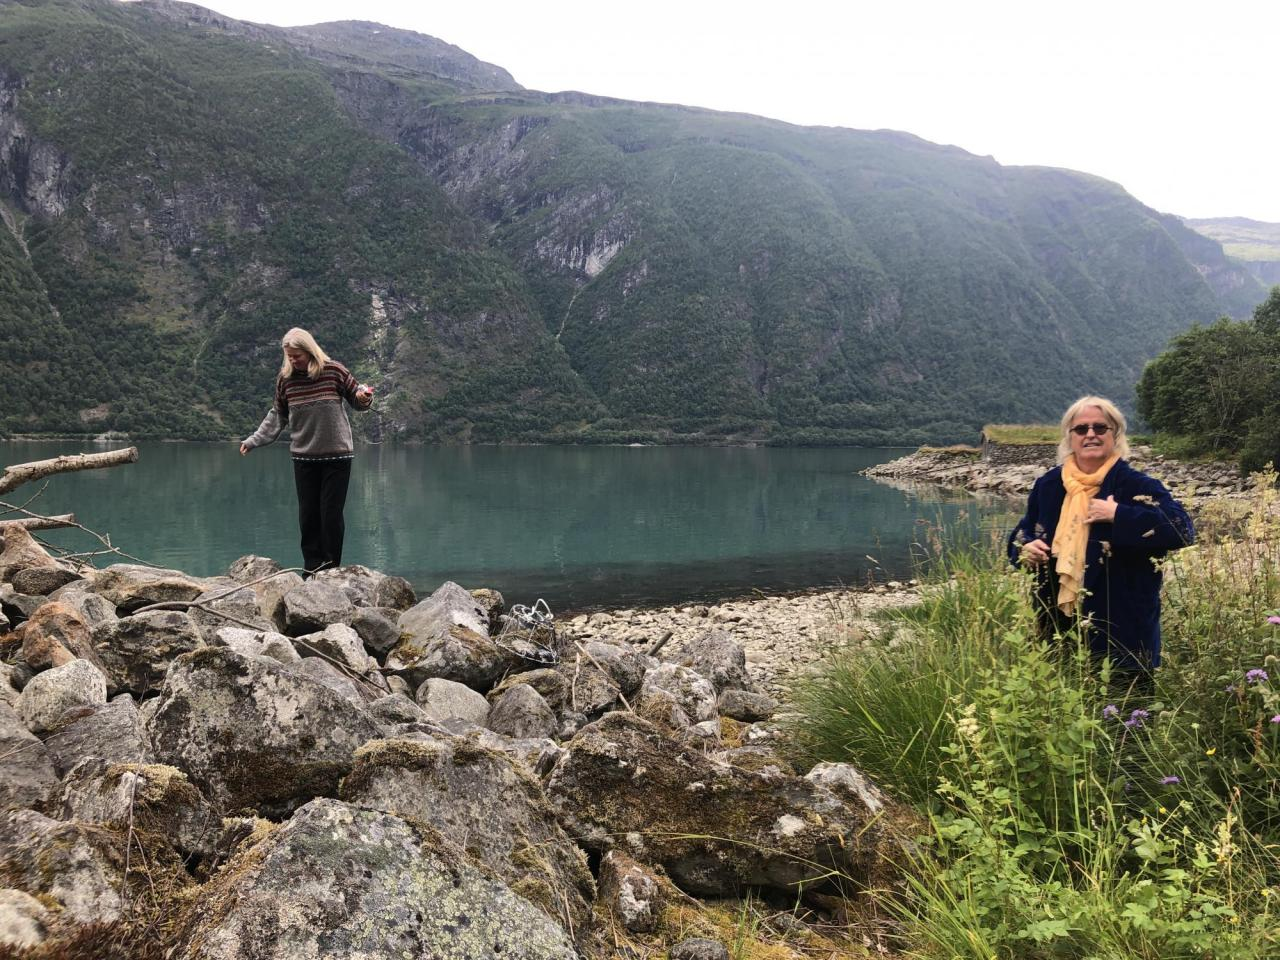 Marianne Heske (right) and Hedvig Skjorten (left) by Sognefjord